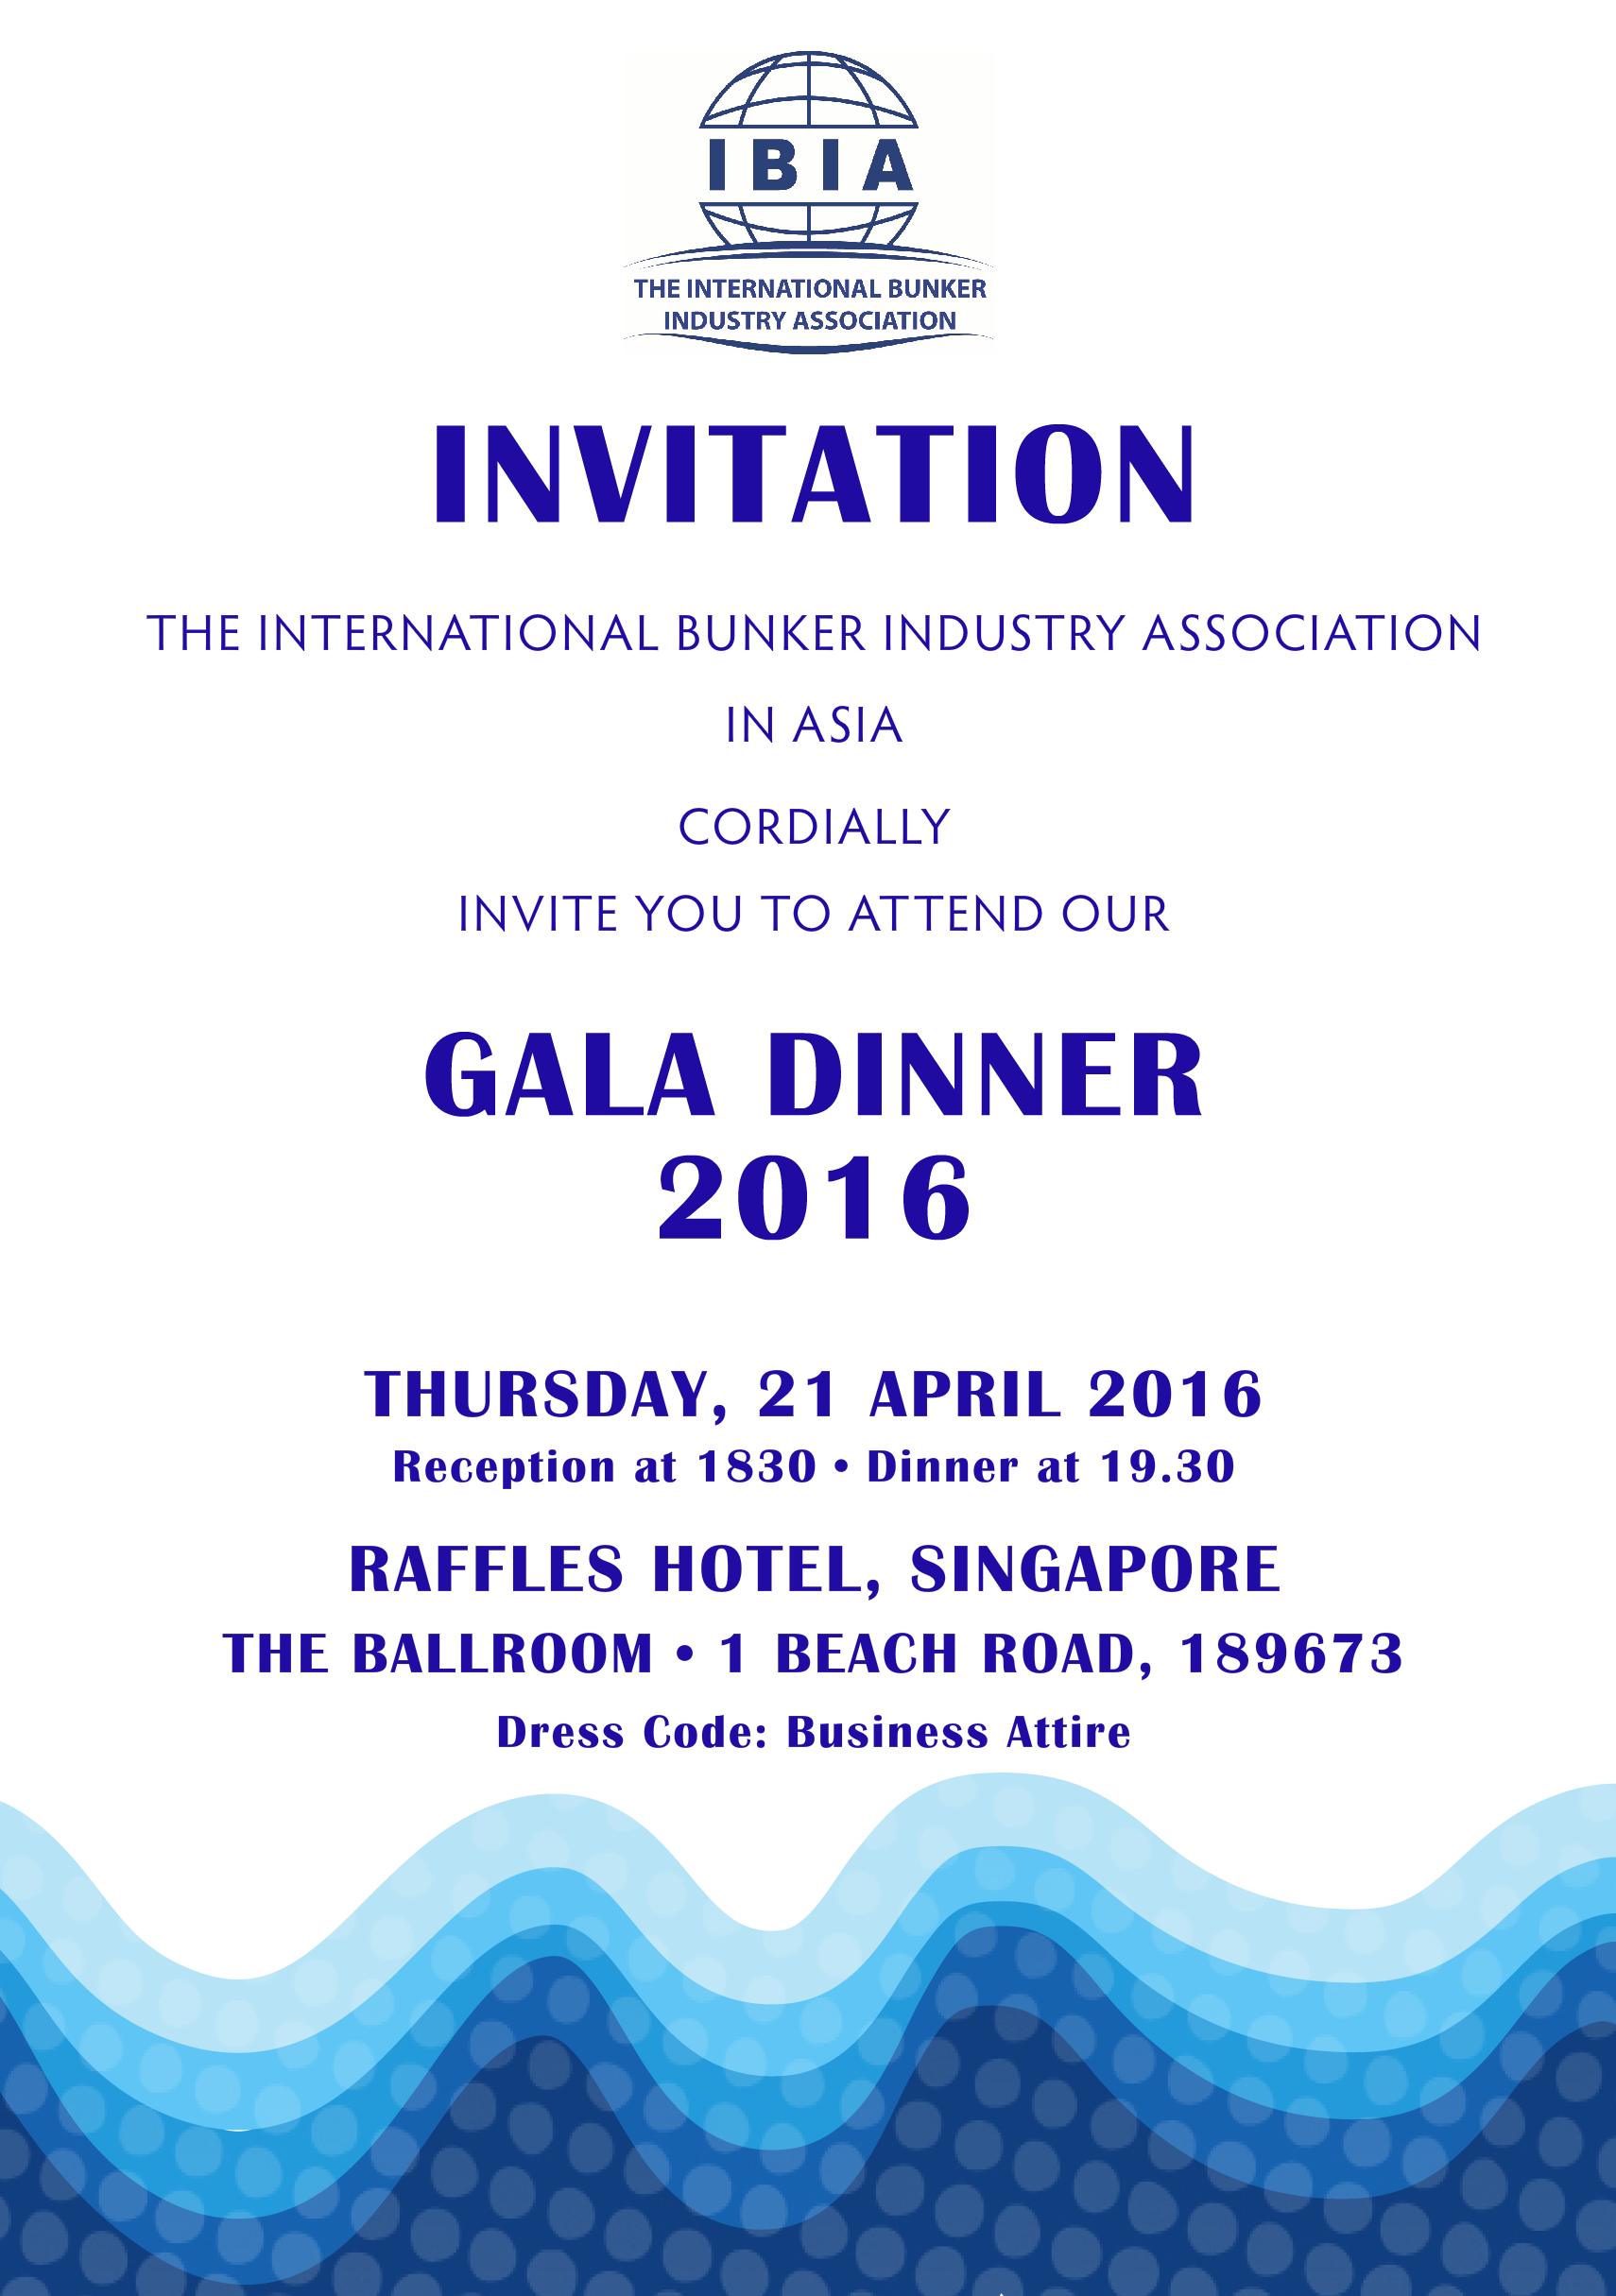 Ibia In Asia Gala Dinner 2016 Invitation Card Ibia In Asia